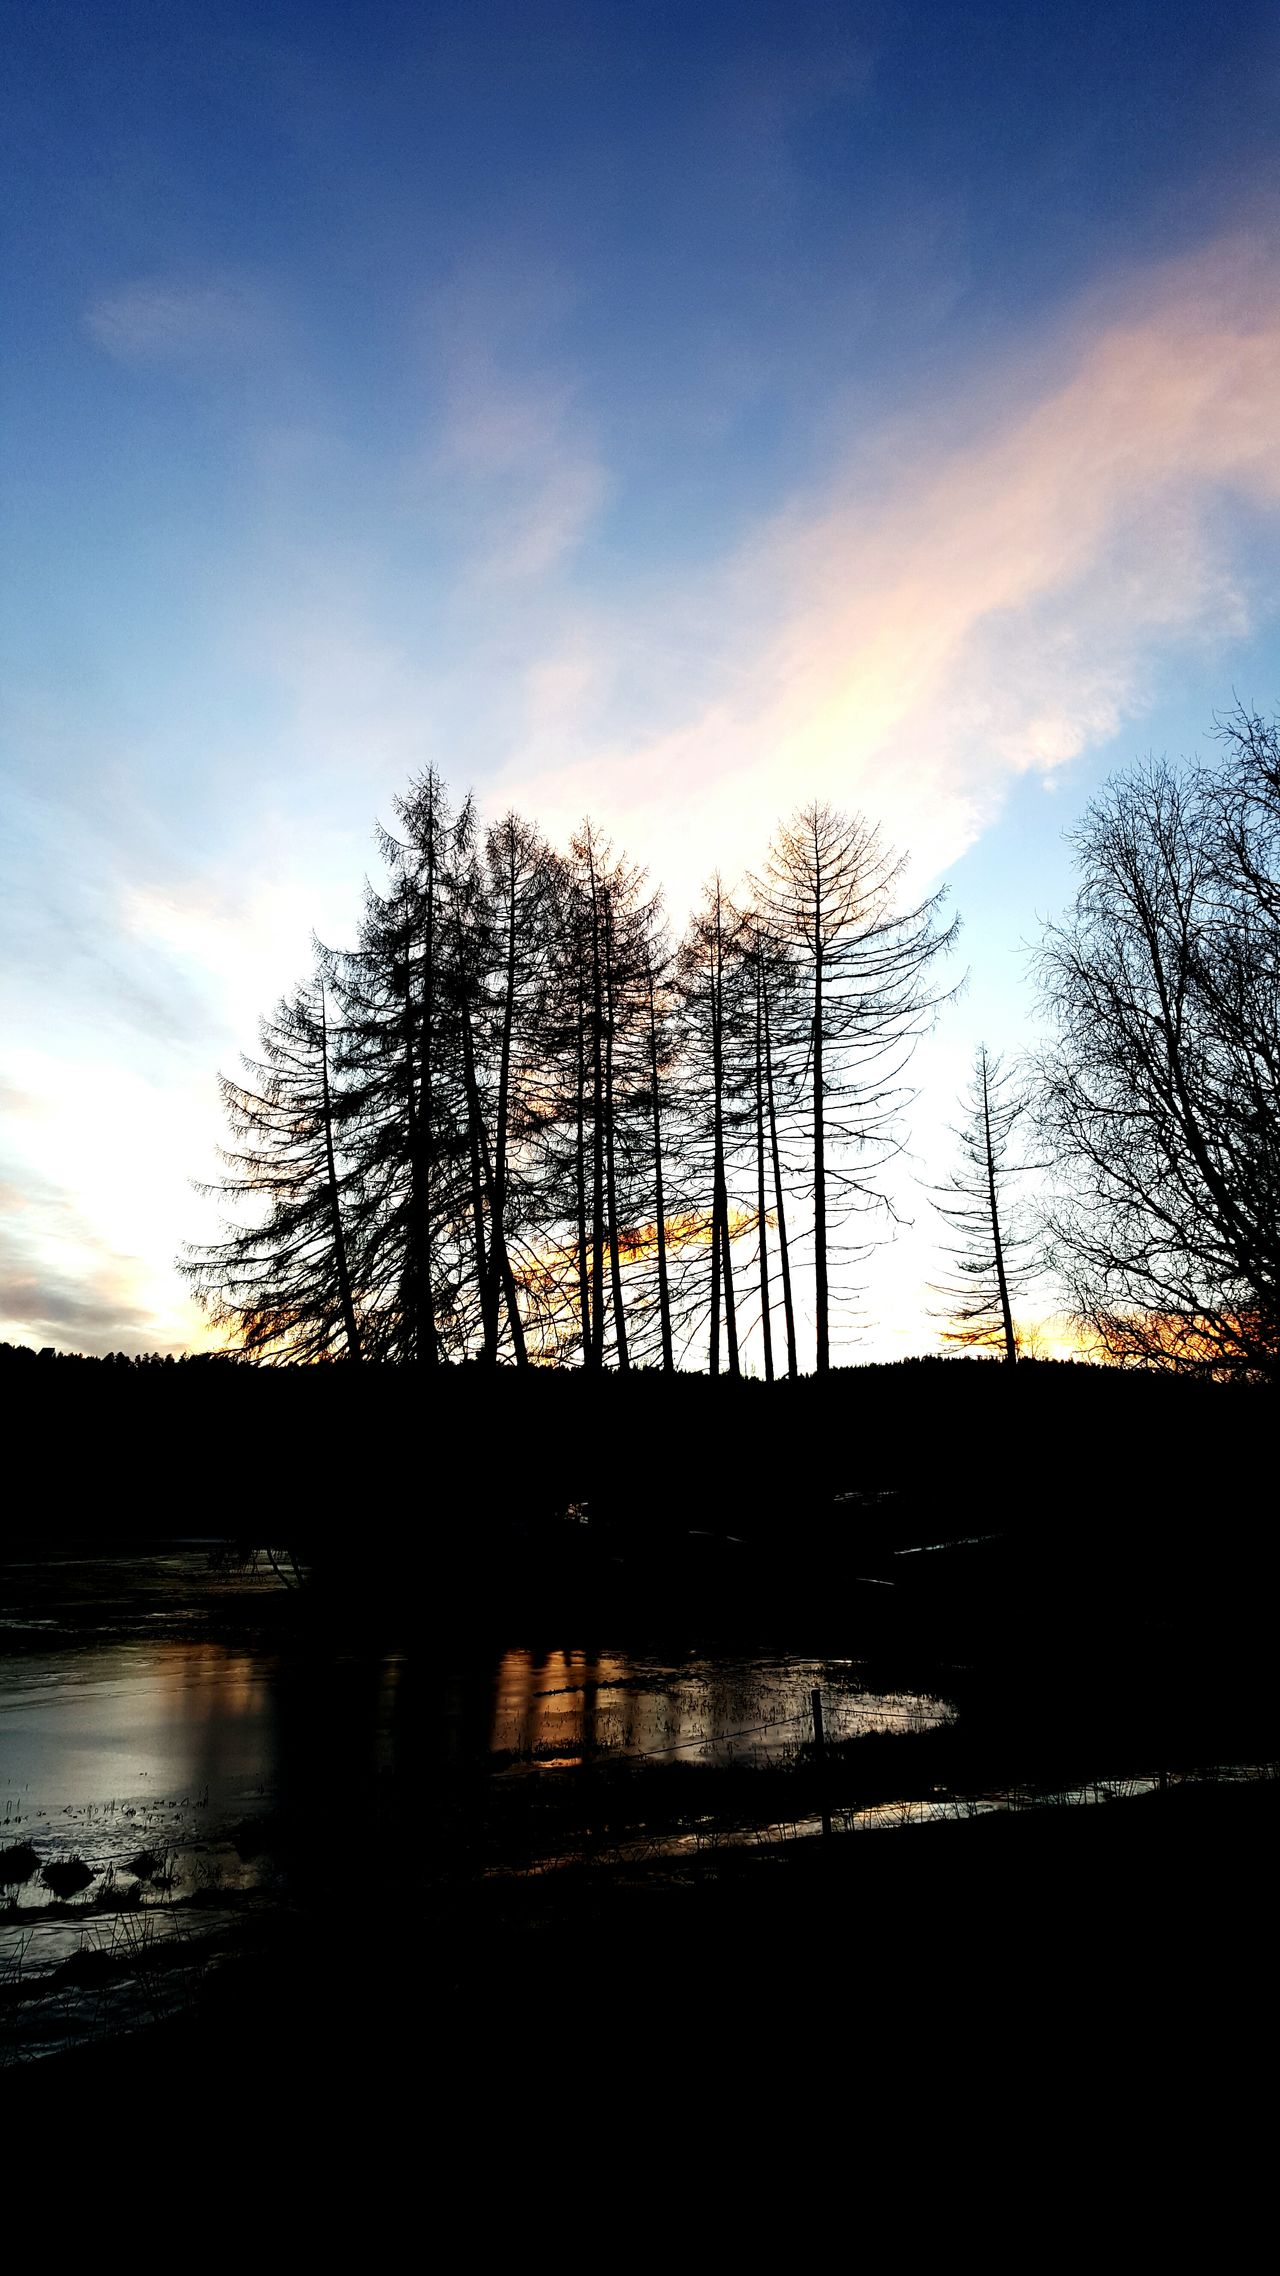 December light Winter Solstice Sky And Clouds Eye4nature Eye4photography  Norway Trondheim Landscape Concert Photography Trees Tree_collection